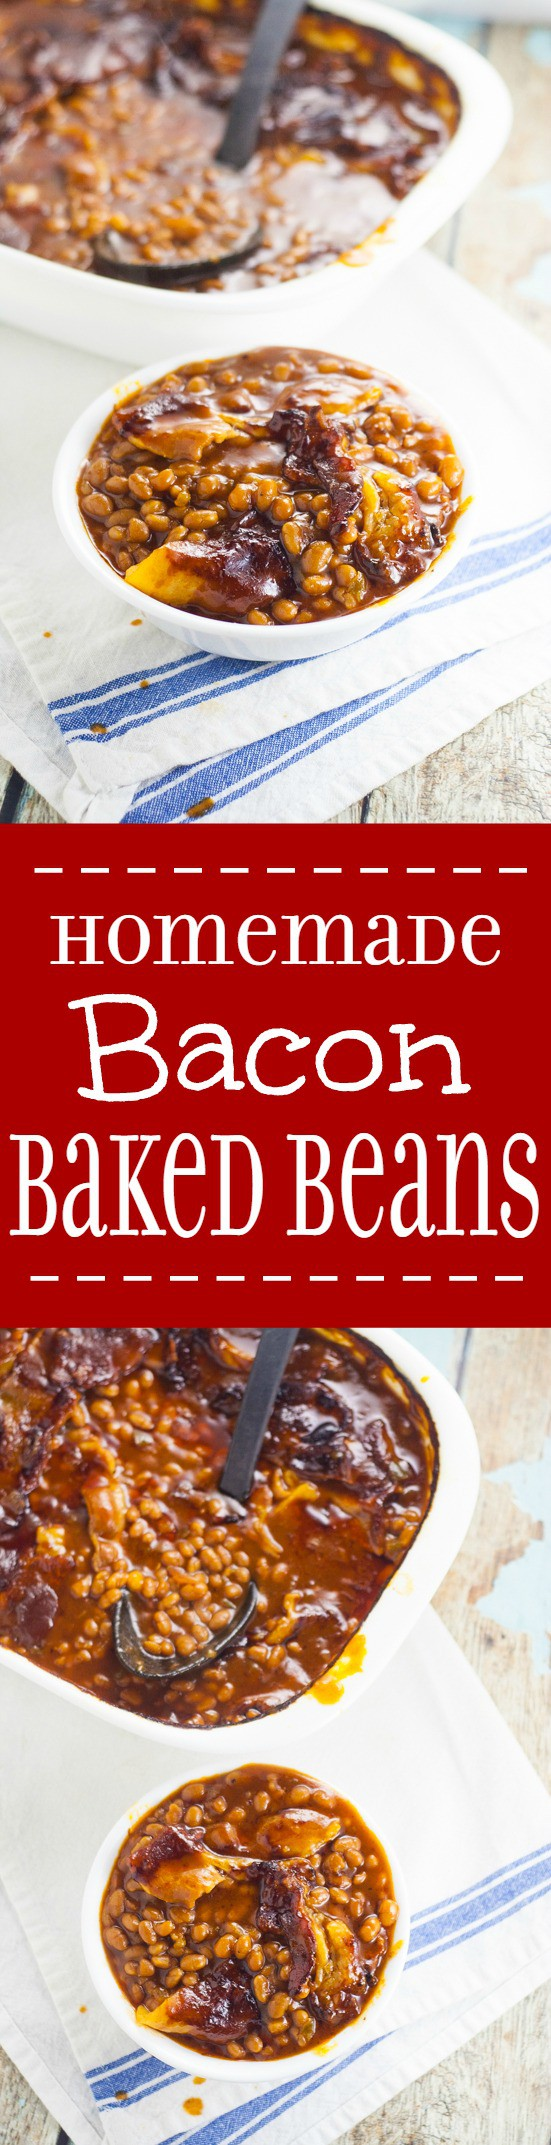 Homemade Bacon Baked Baked Beans Are Easier To Make Than You Think! Sweet  And Tangy